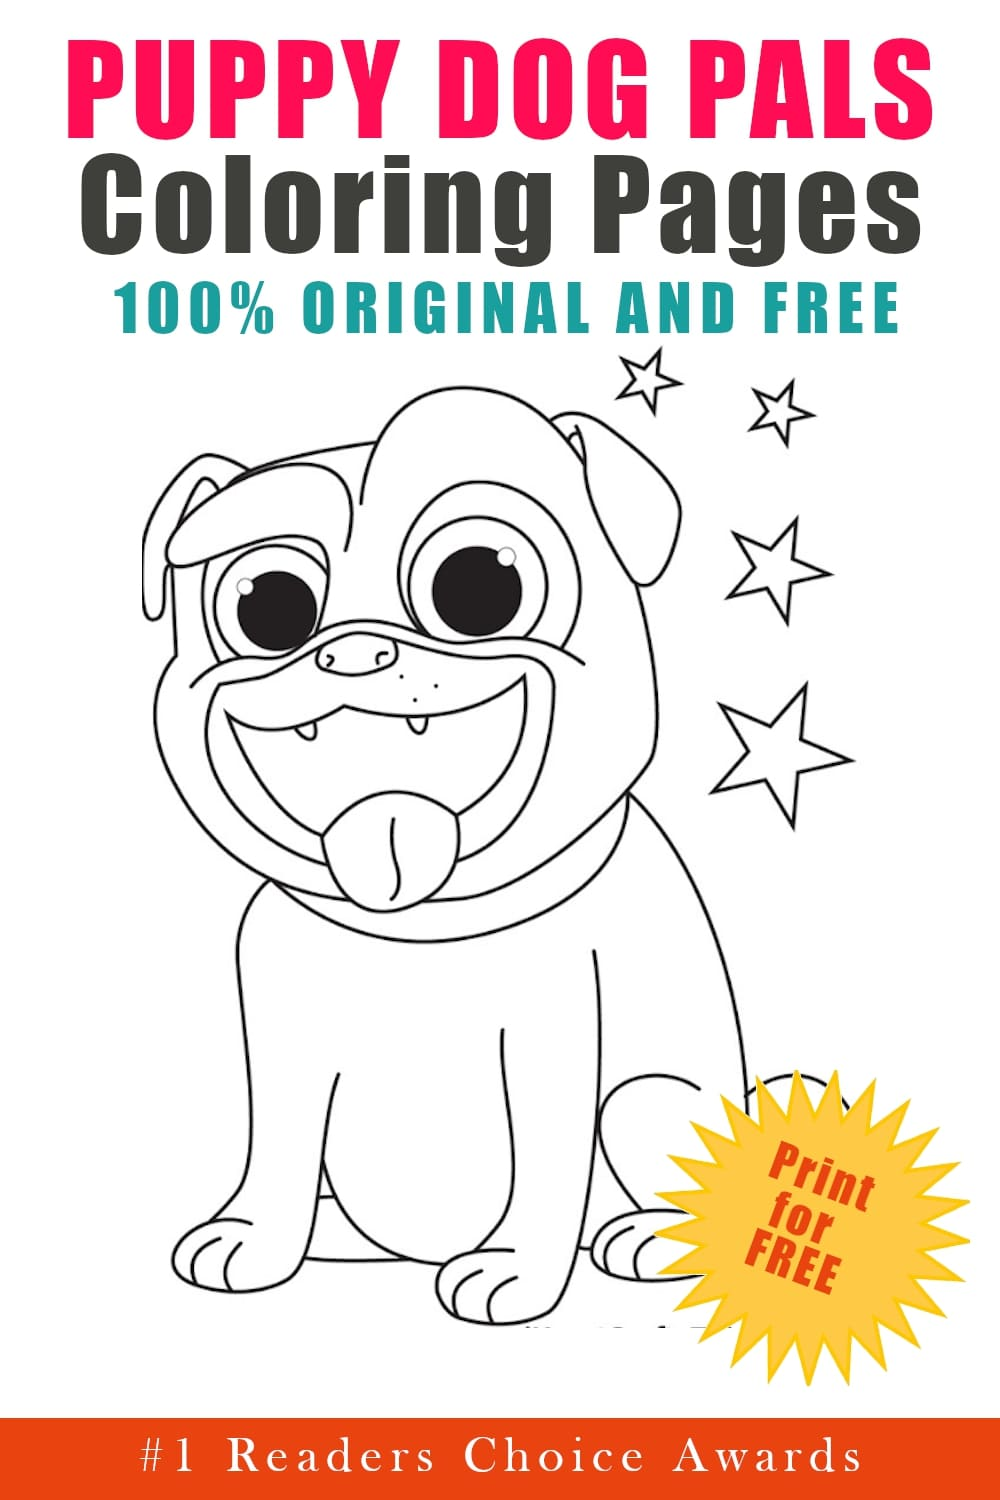 original and free puppy dog pals coloring pages download